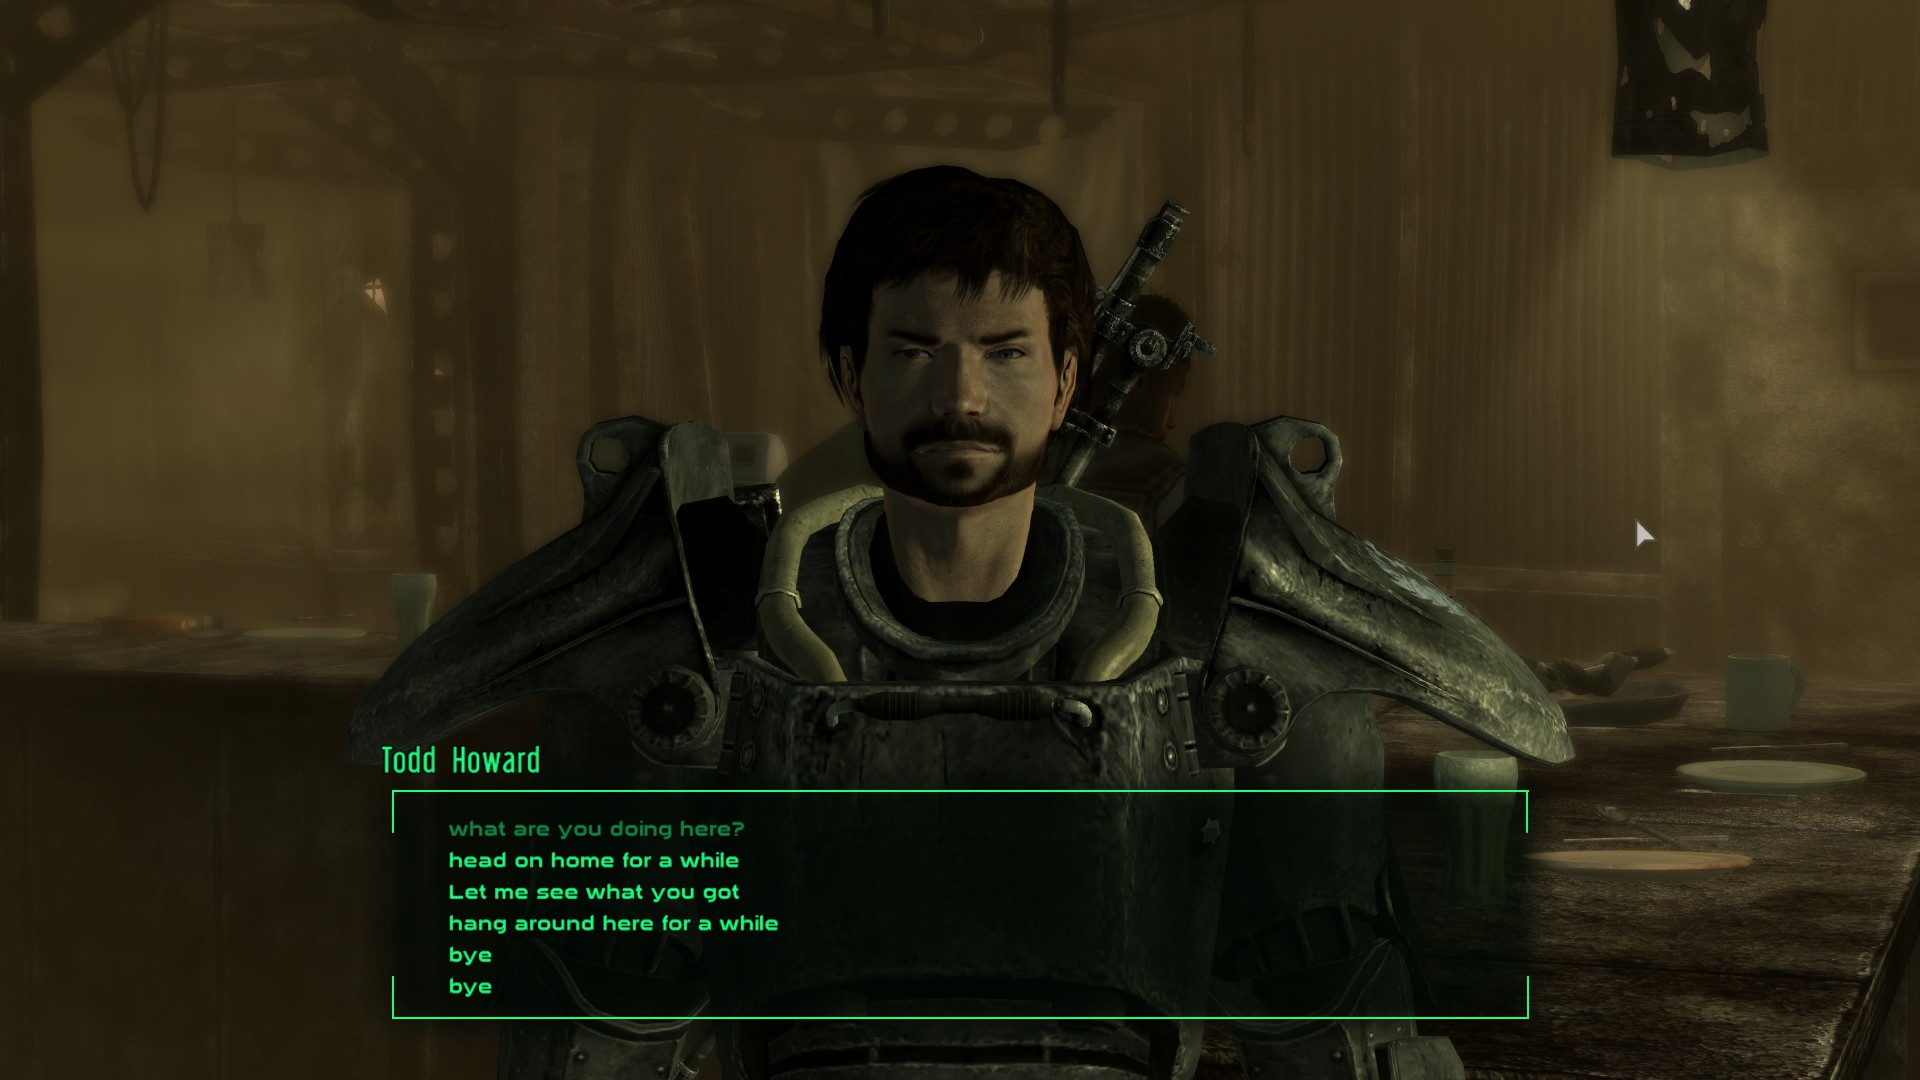 Todd Howard Companion Mod At Fallout3 Nexus Mods And Community